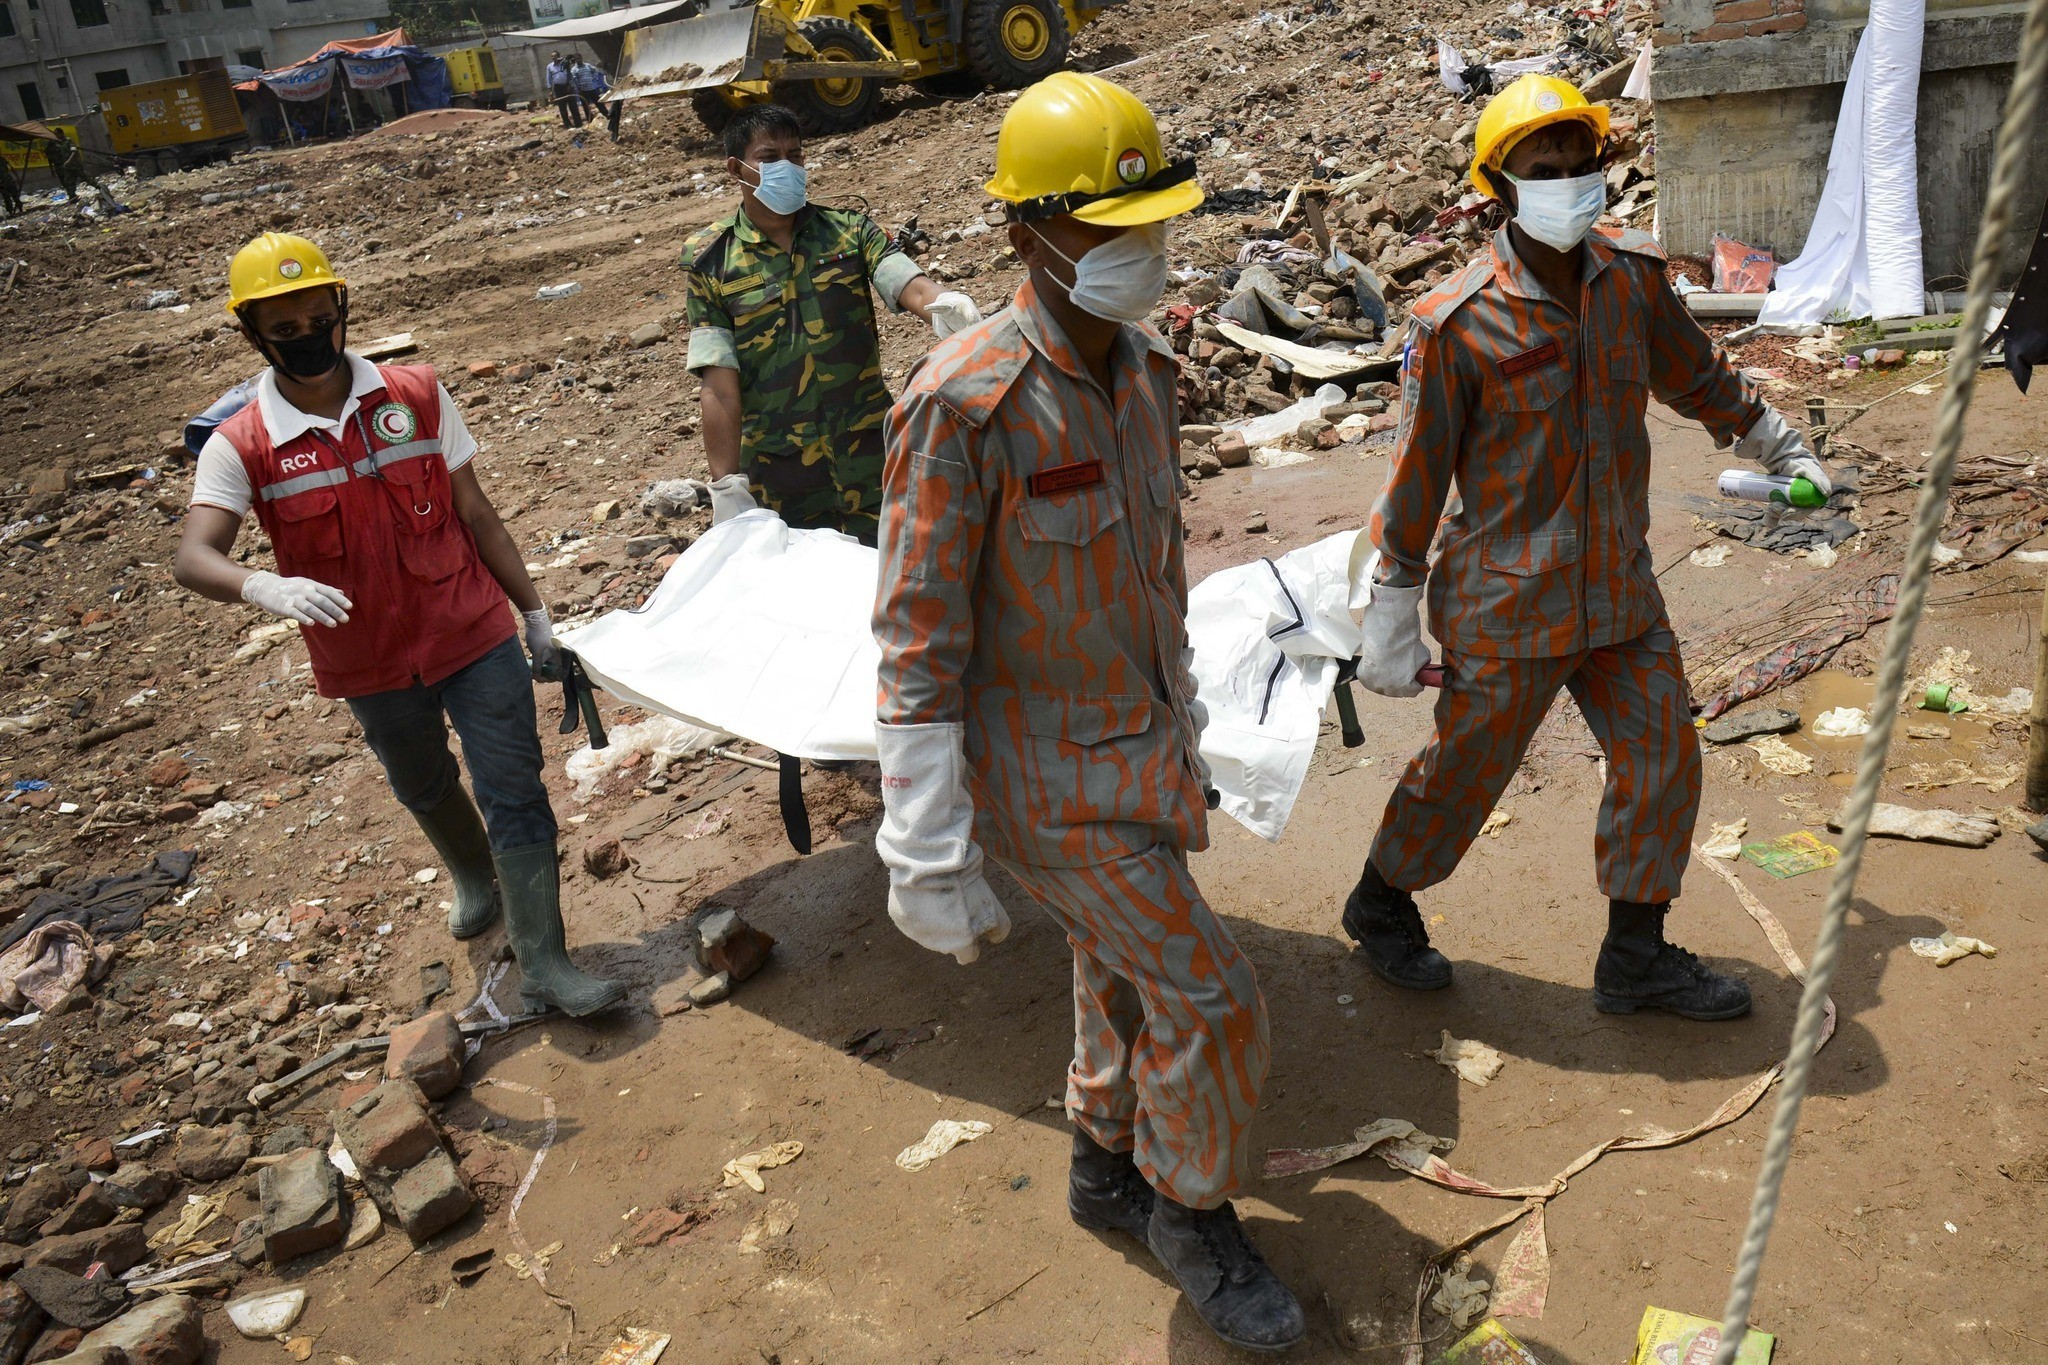 Bangladesh building collapse death toll tops 1,000 - Rescue workers